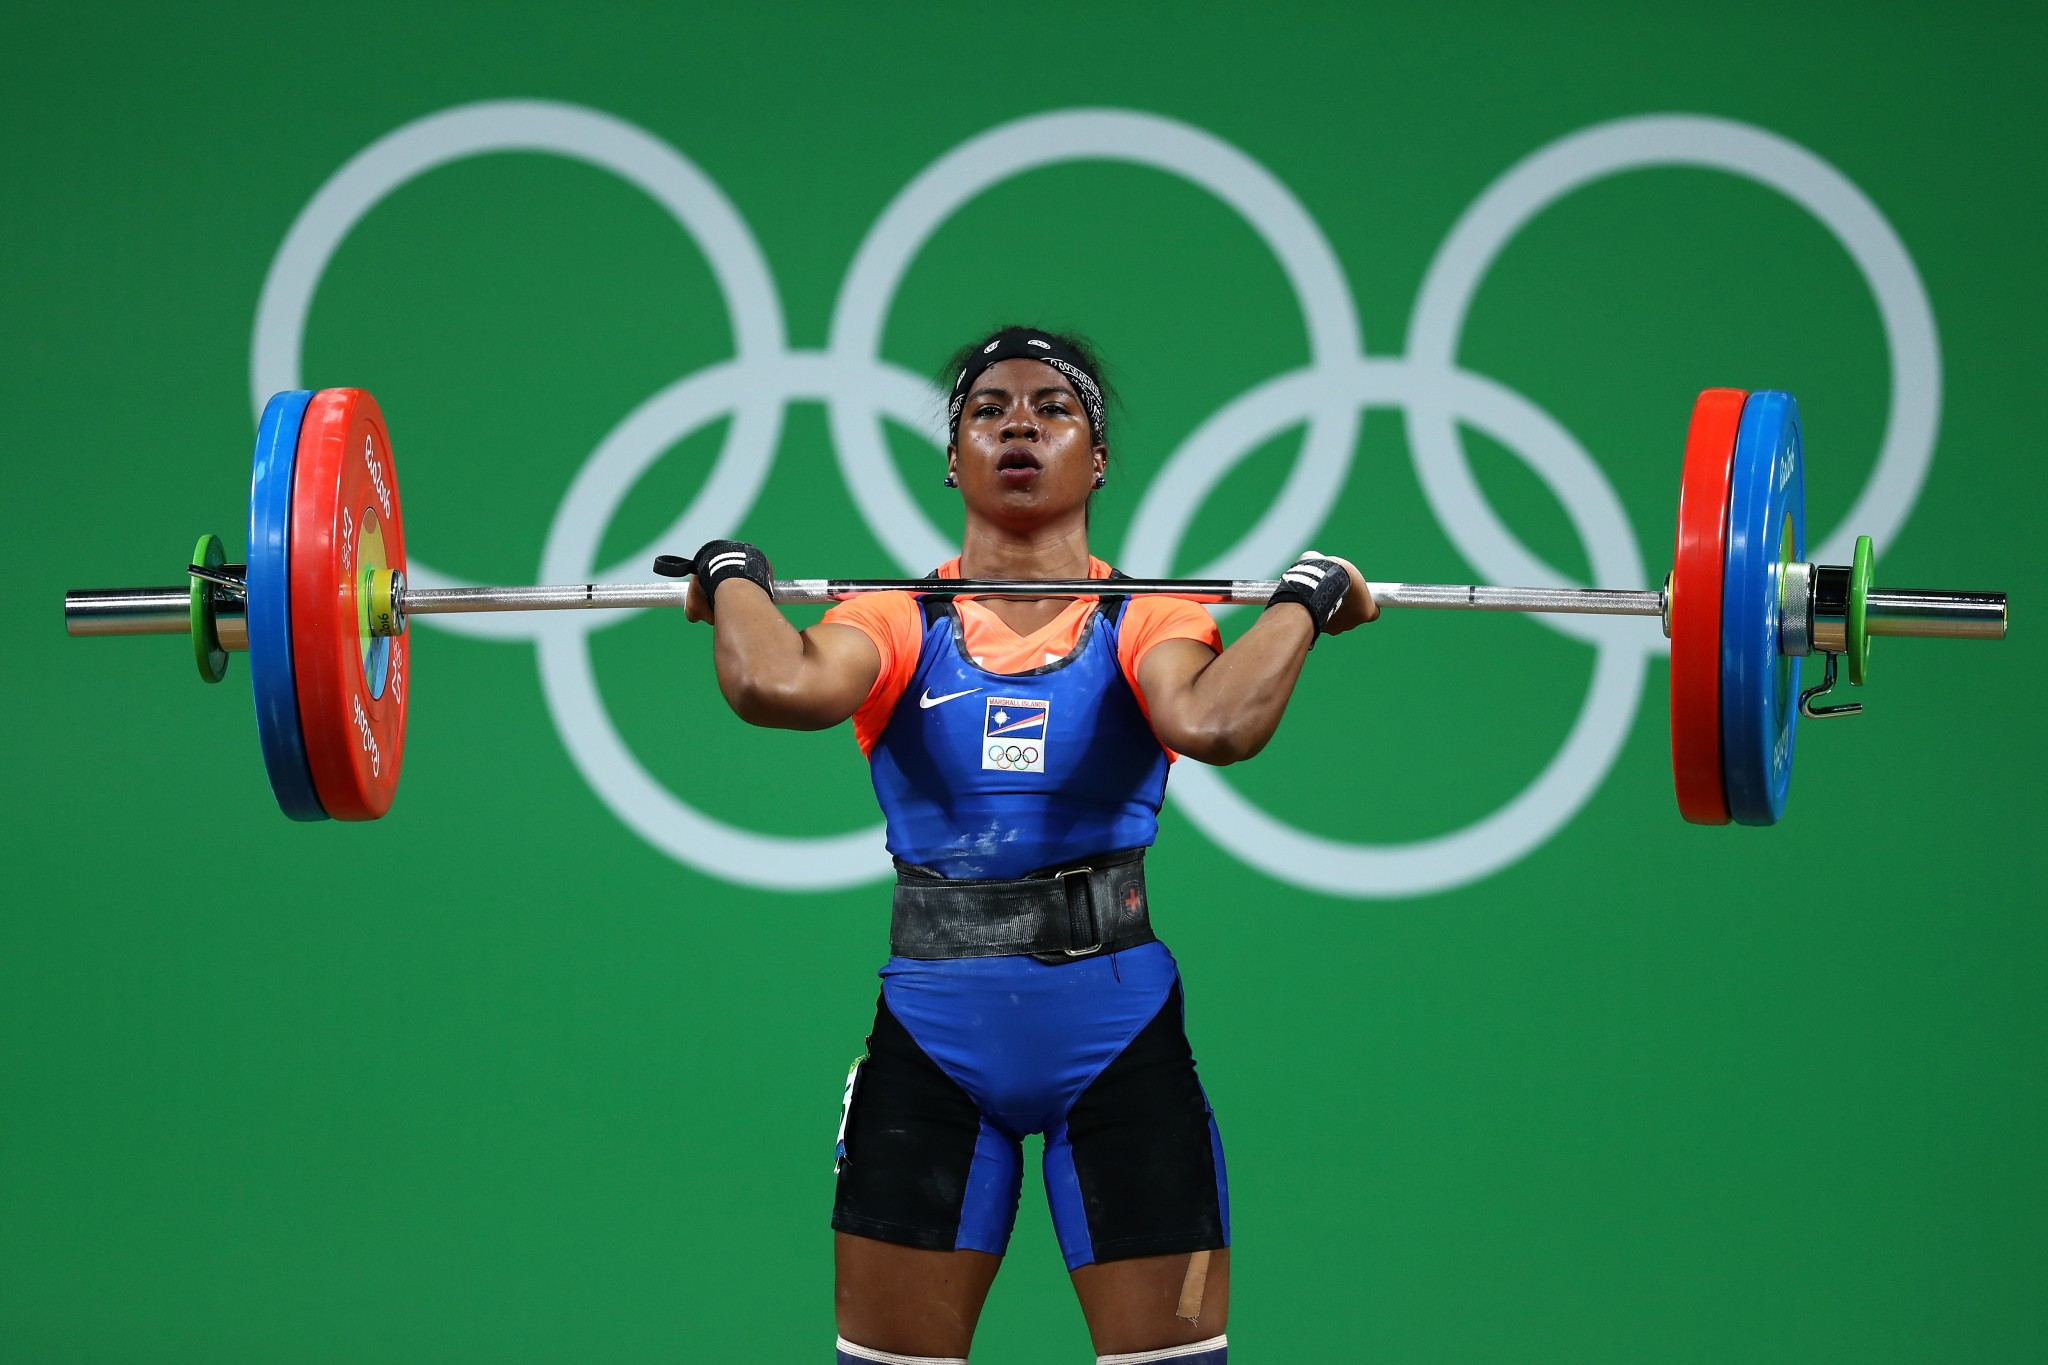 Weightlifter Mathlynn Sasser was part of the Marshall Islands team at Rio 2016 ©Getty Images